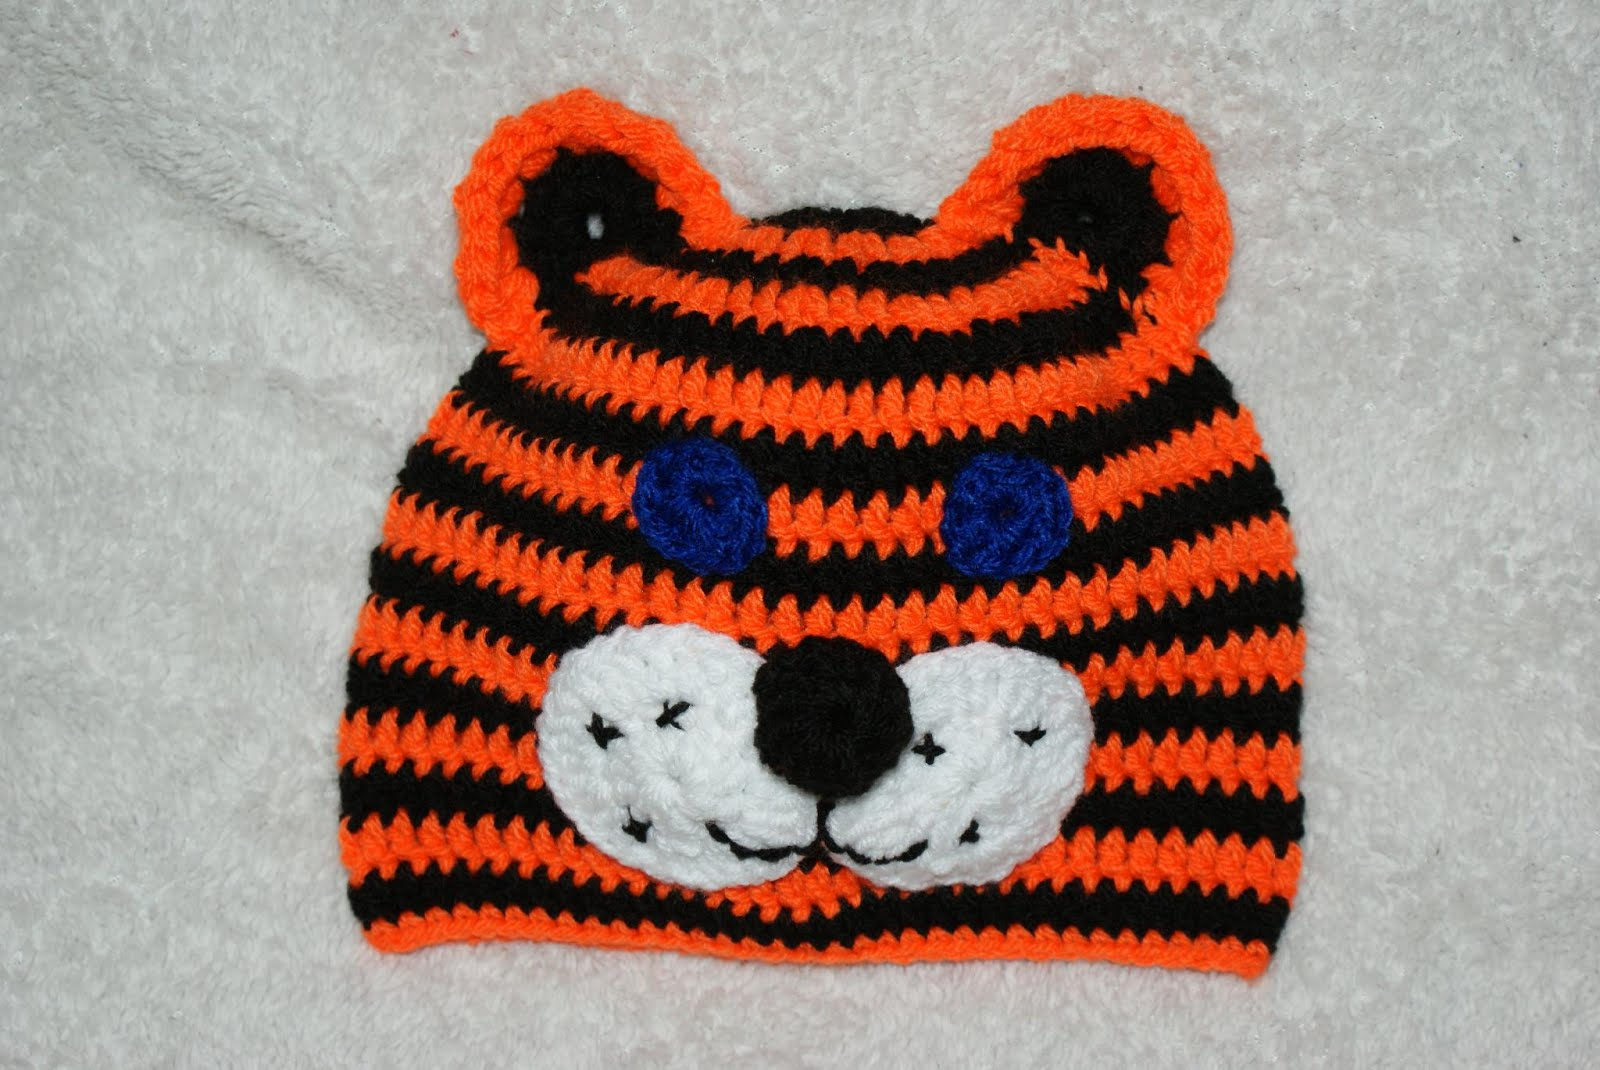 crochet magic for all: Crochet tiger hat for kids